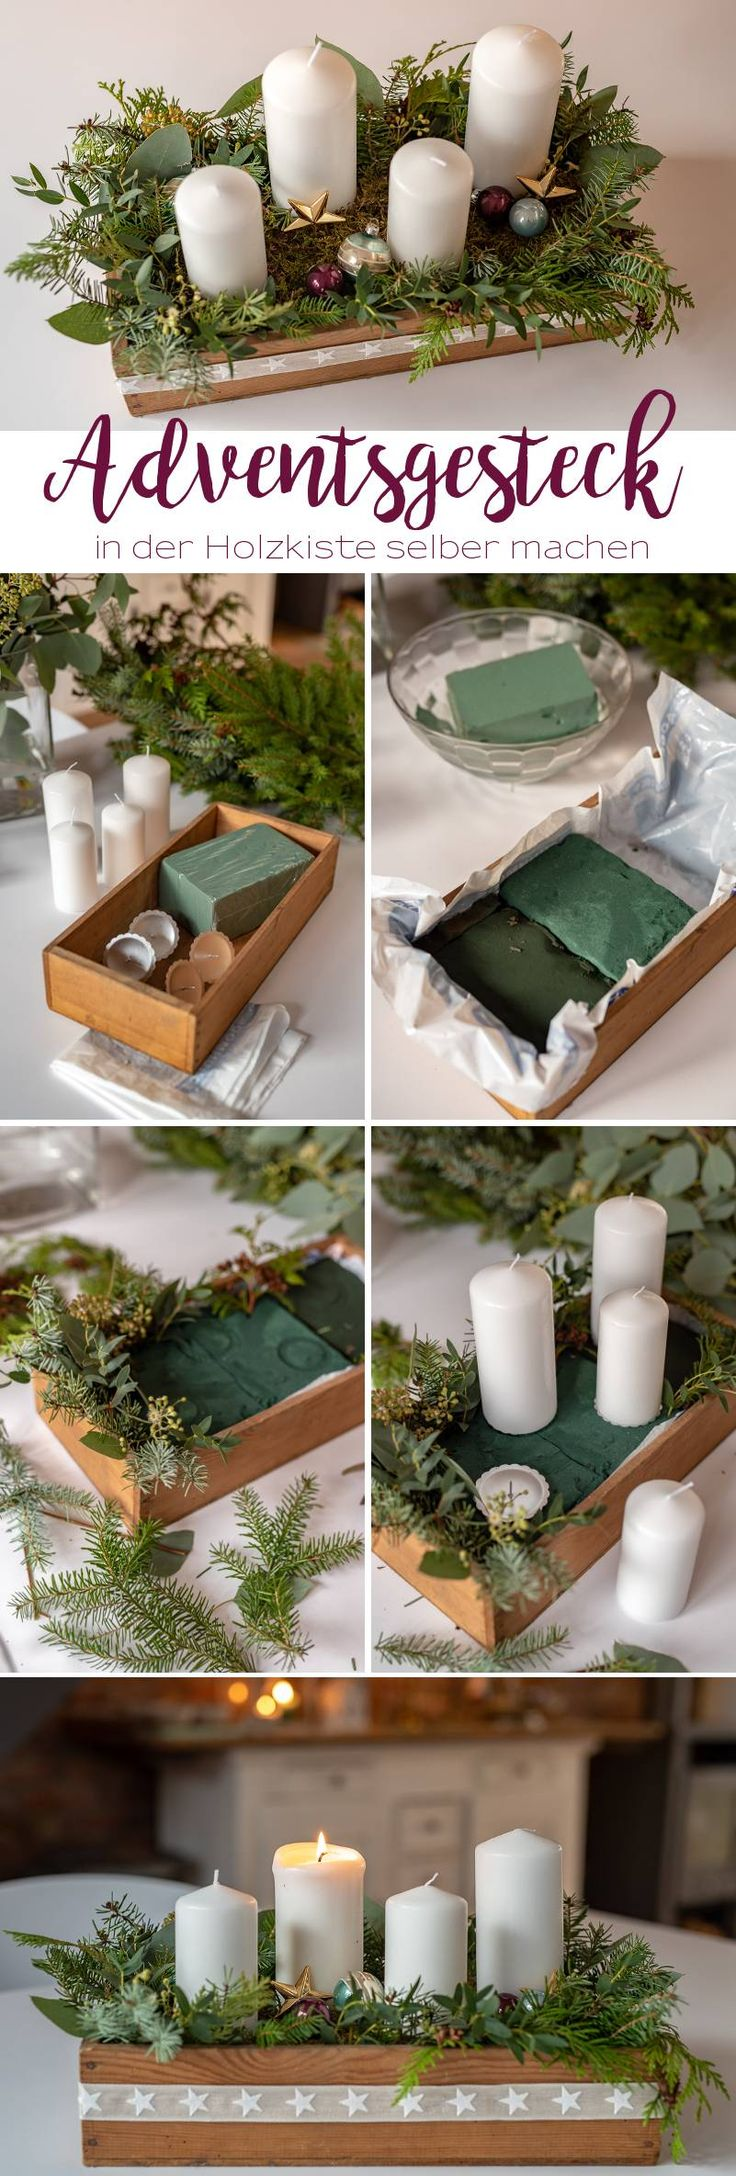 DIY Advent wreath: Advent arrangement in the wooden box